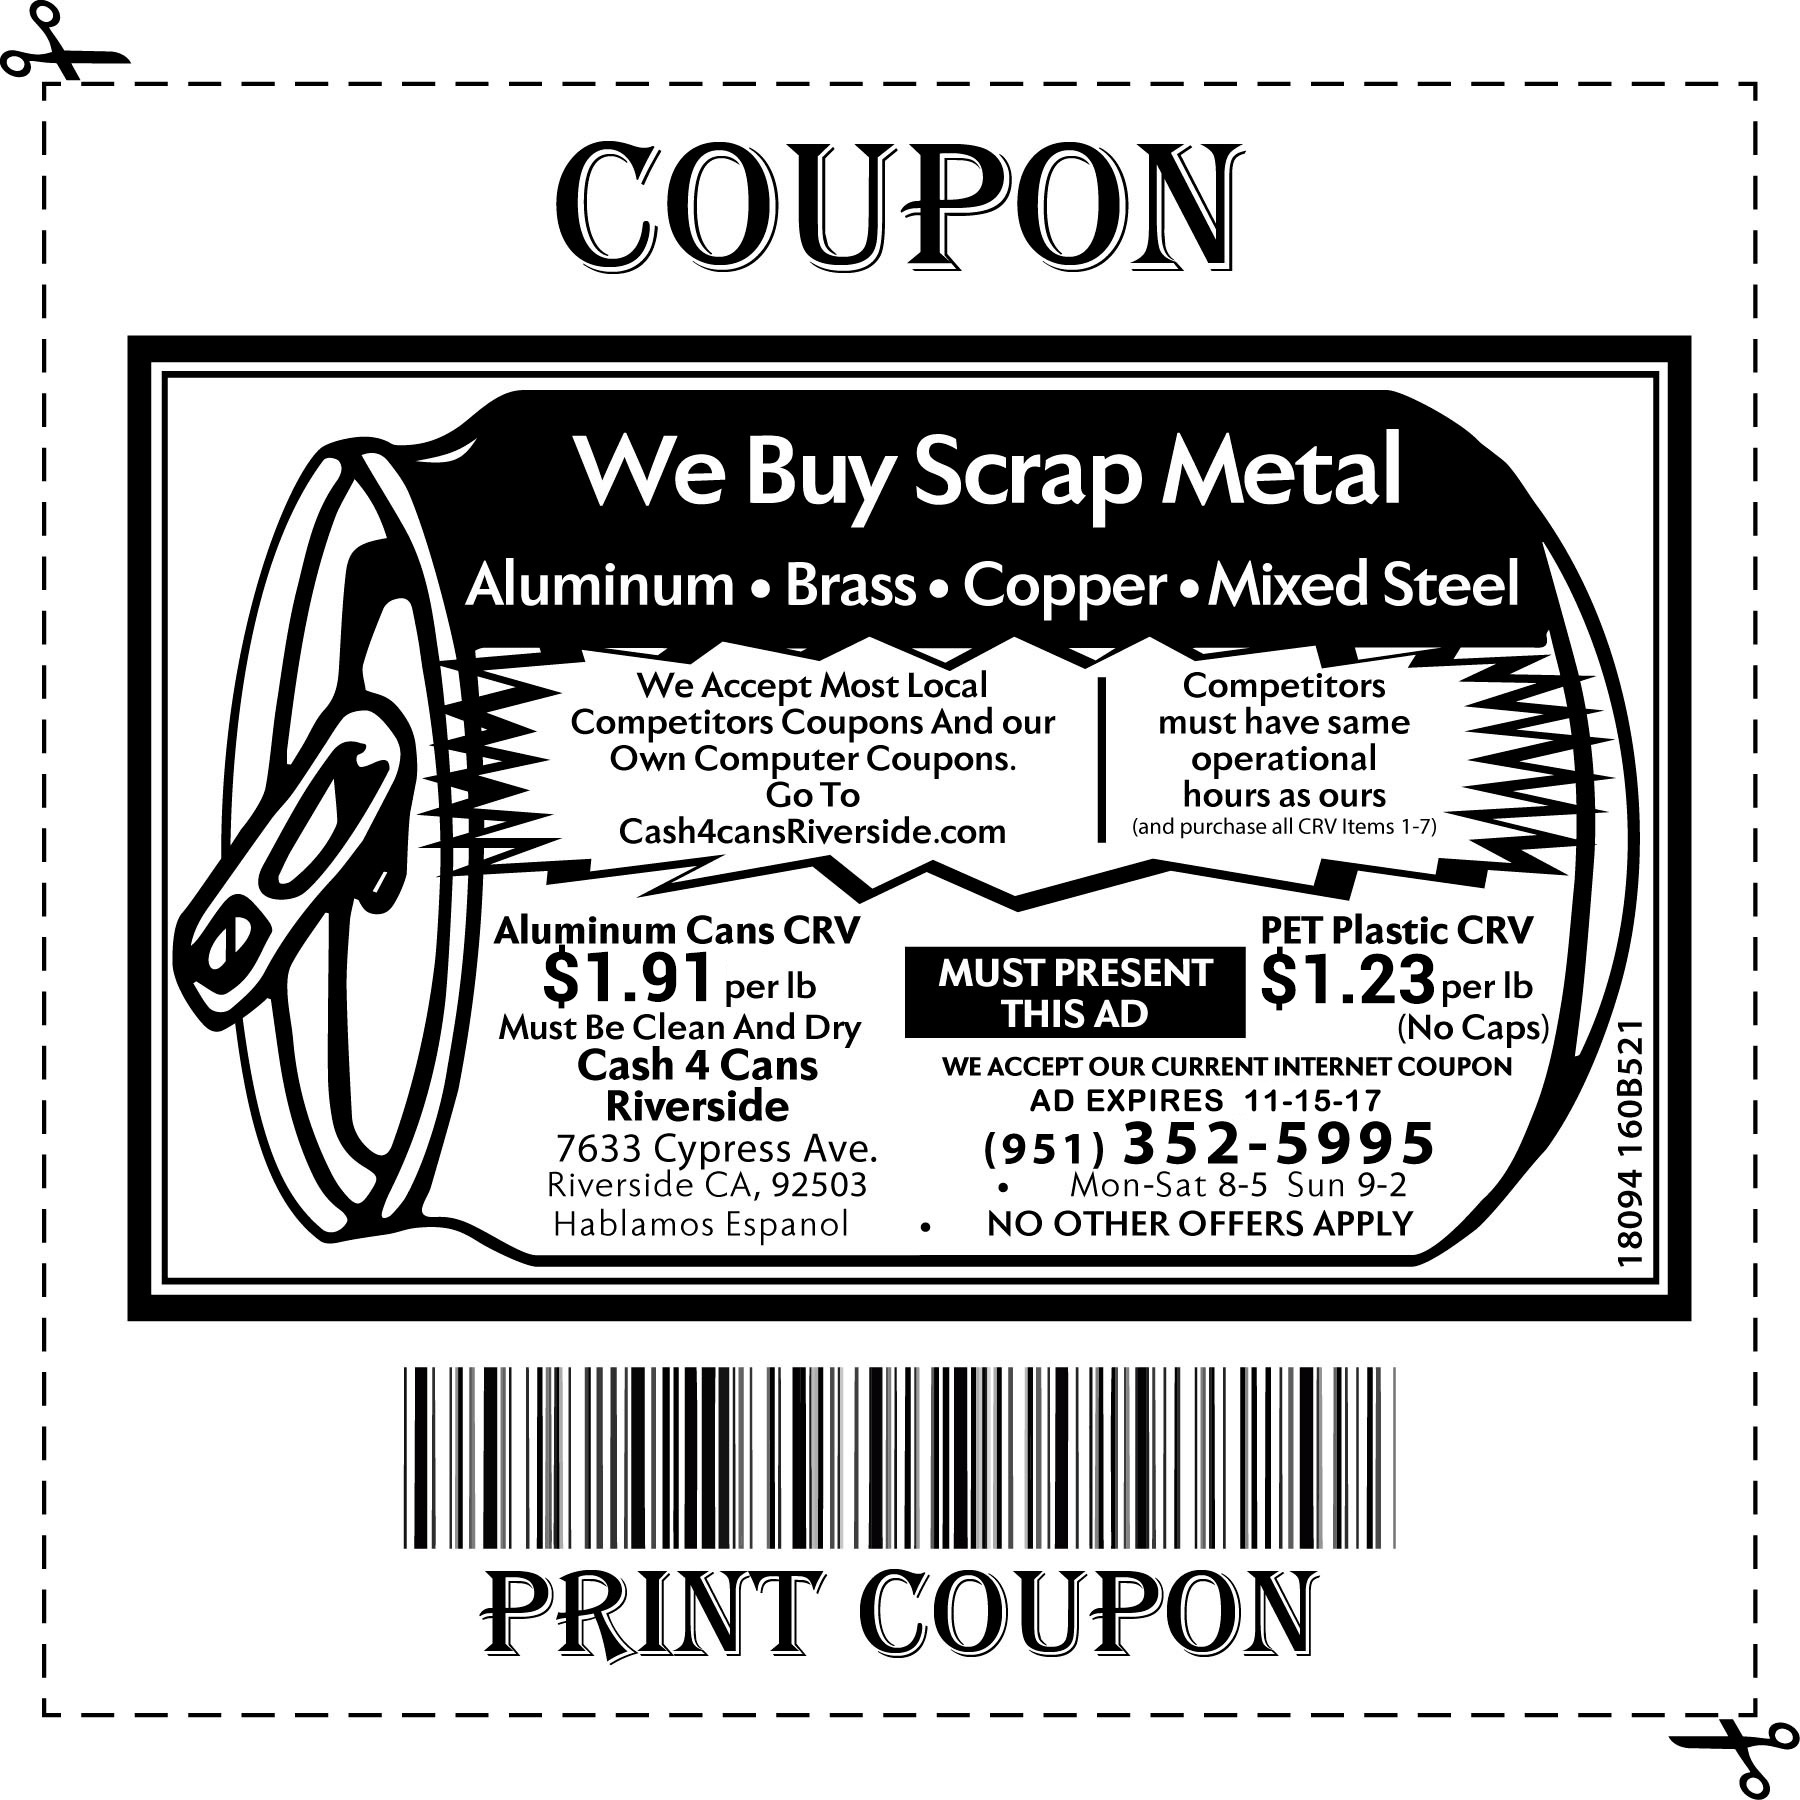 graphic regarding Pat Catan's Coupons Printable called Money 4 cans coupon / Fresh Discount coupons